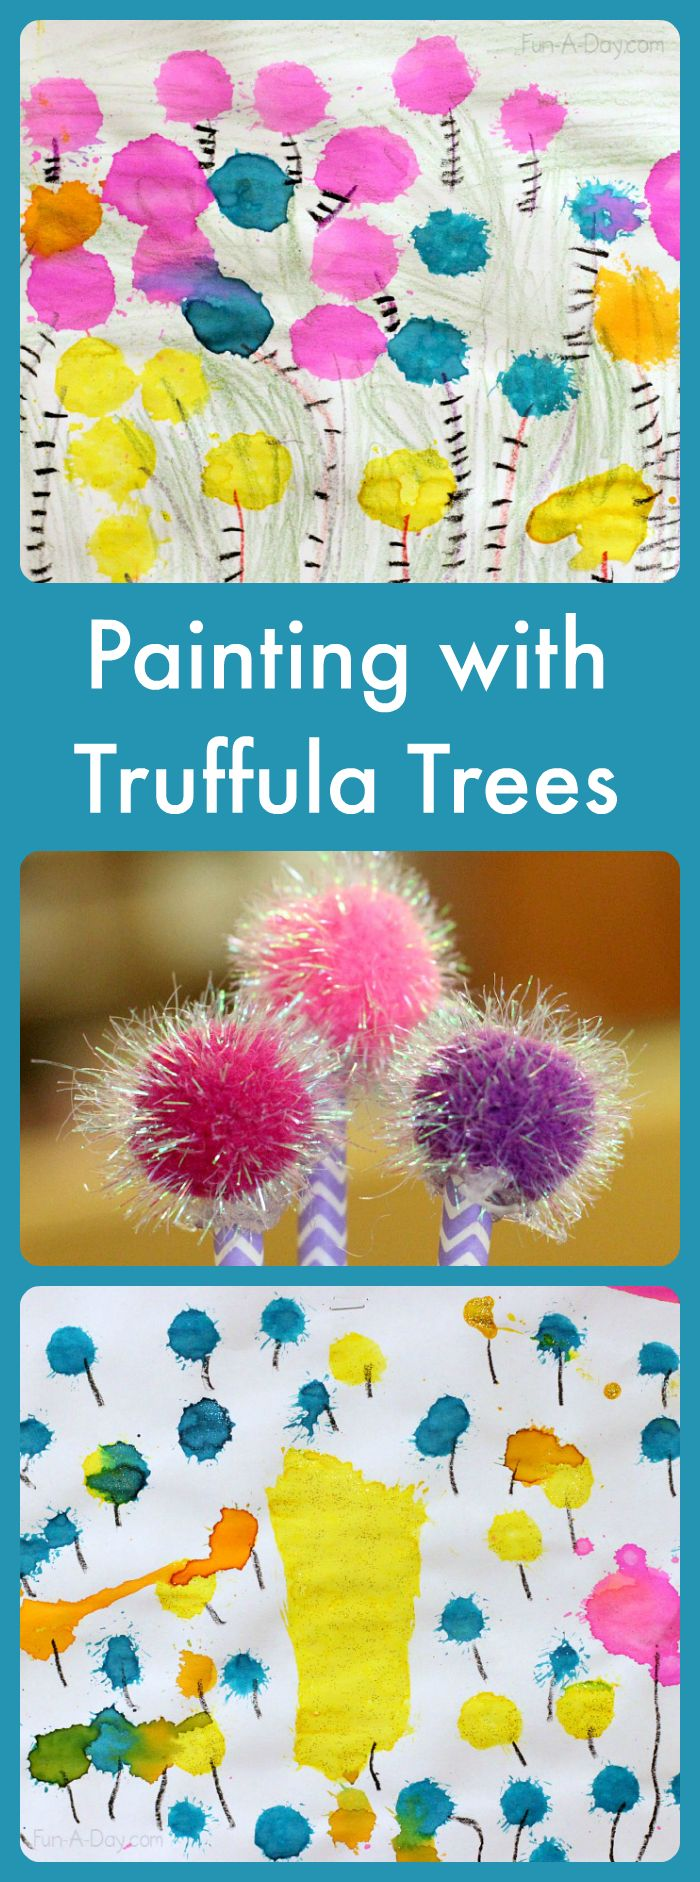 Painting with Truffula Trees - one of our favorite Dr. Seuss art projects!